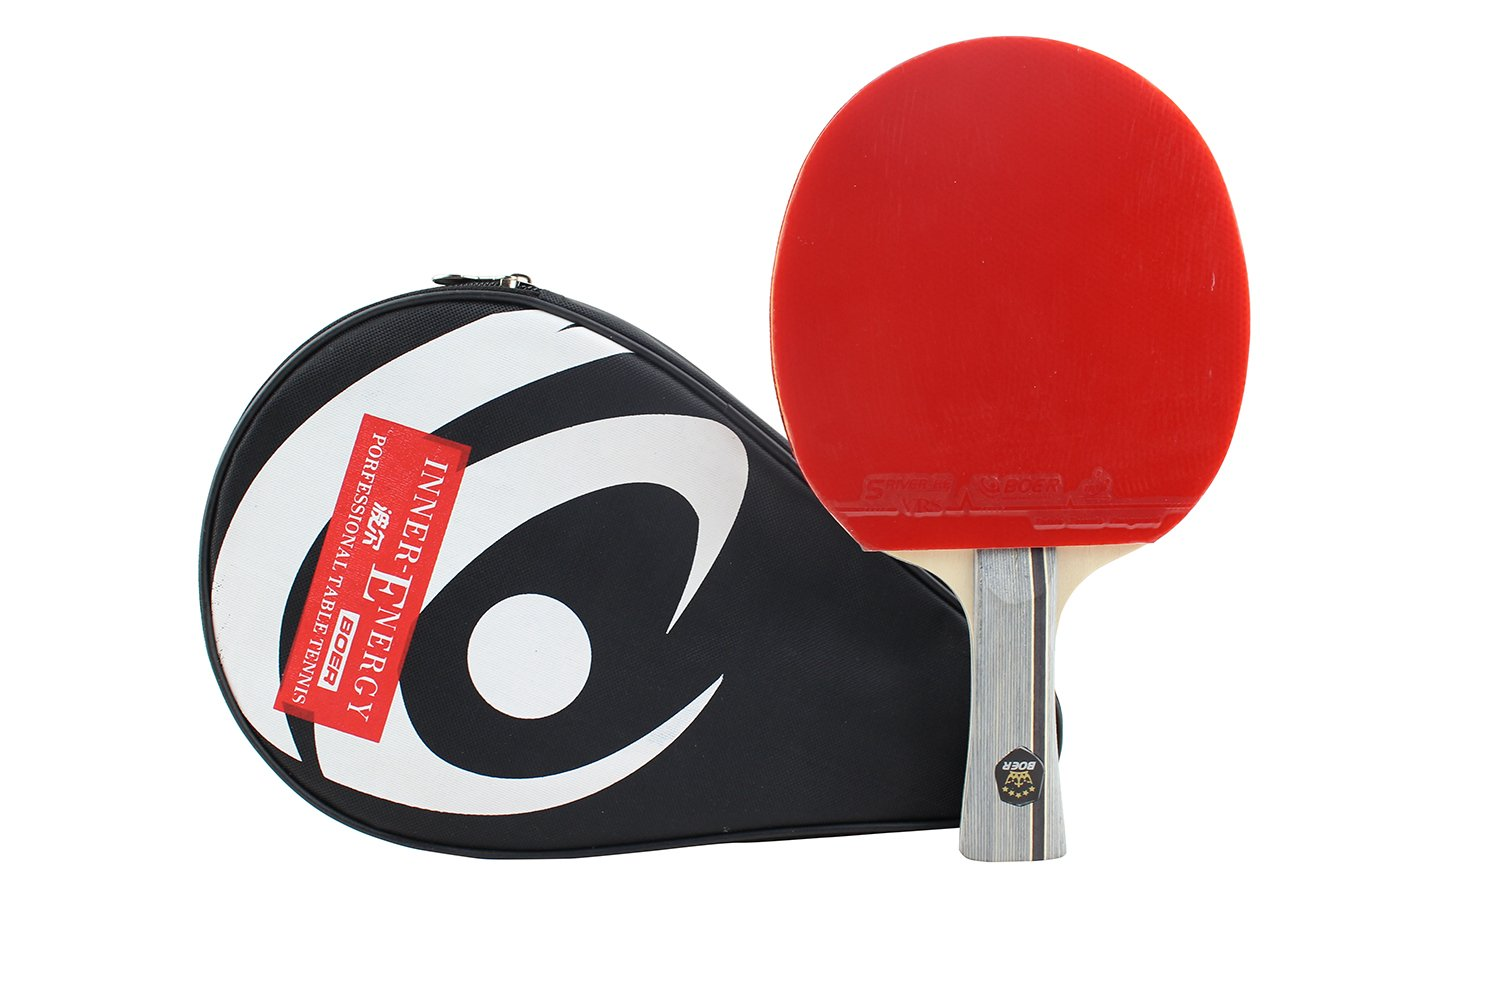 Larsuyar Advanced Trainning Table Tennis Paddle with Carrying Bag- 7 ply Wooden Blade with Long Handle (1 Star Shakehand Racket)